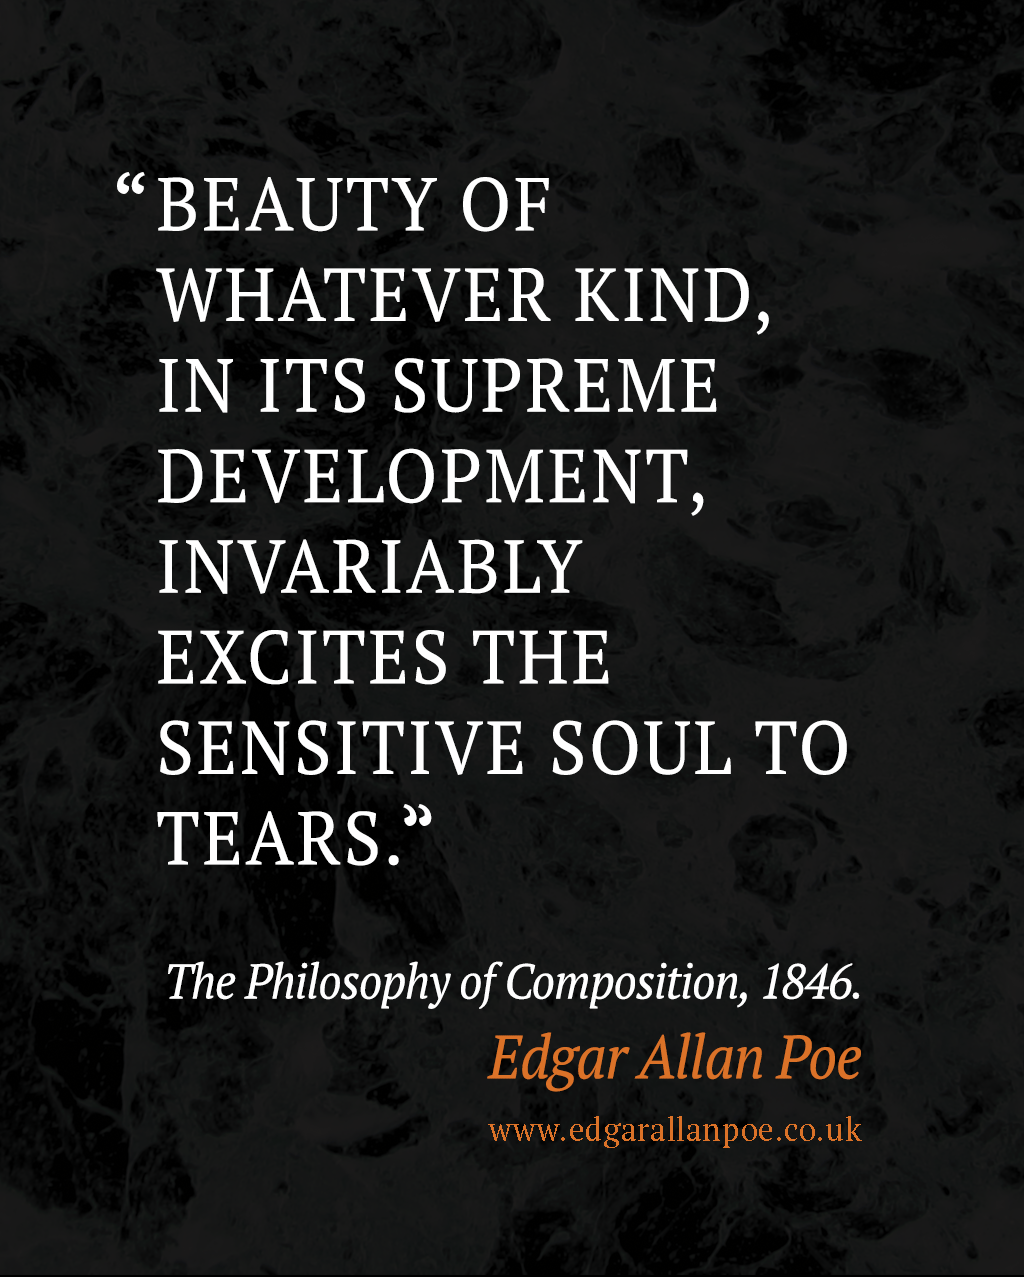 Beauty of whatever kind the philosophy of composition edgar allan poe quote